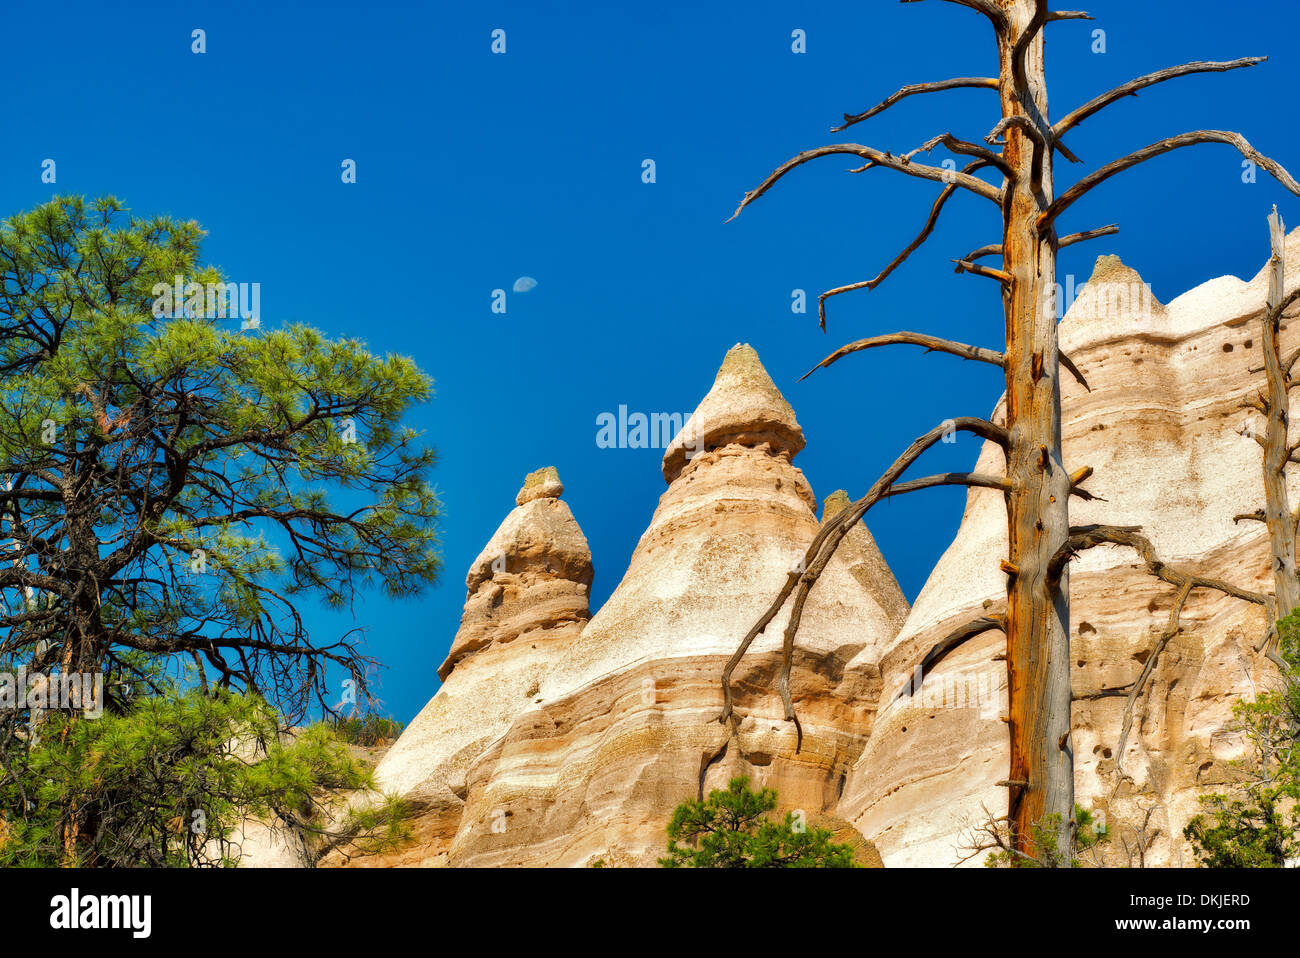 Dead tree, moon and rock formations in Tent Rocks National Monument, New Mexico - Stock Image